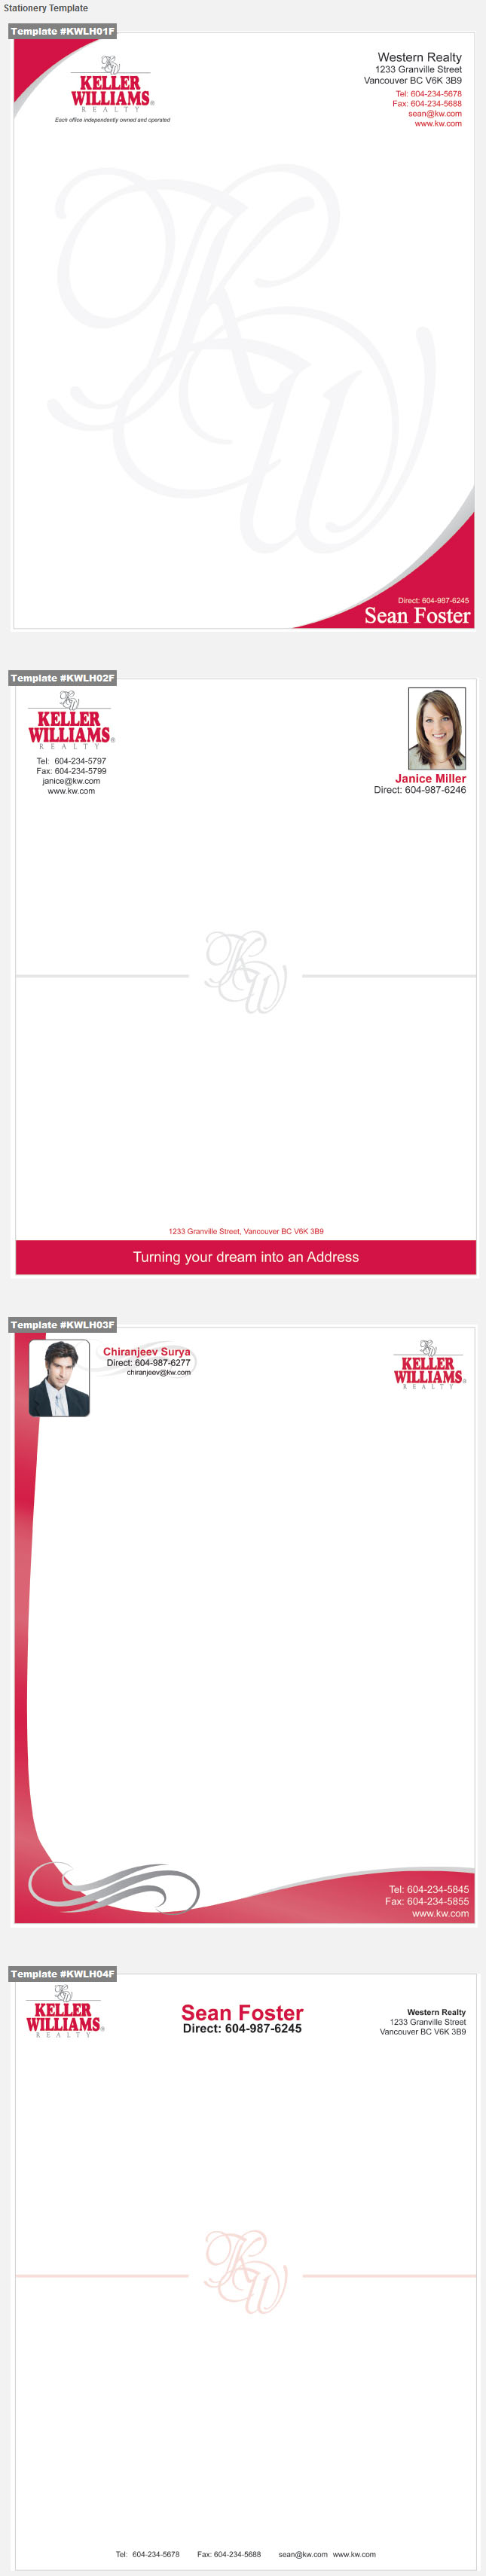 Keller Williams Design Template